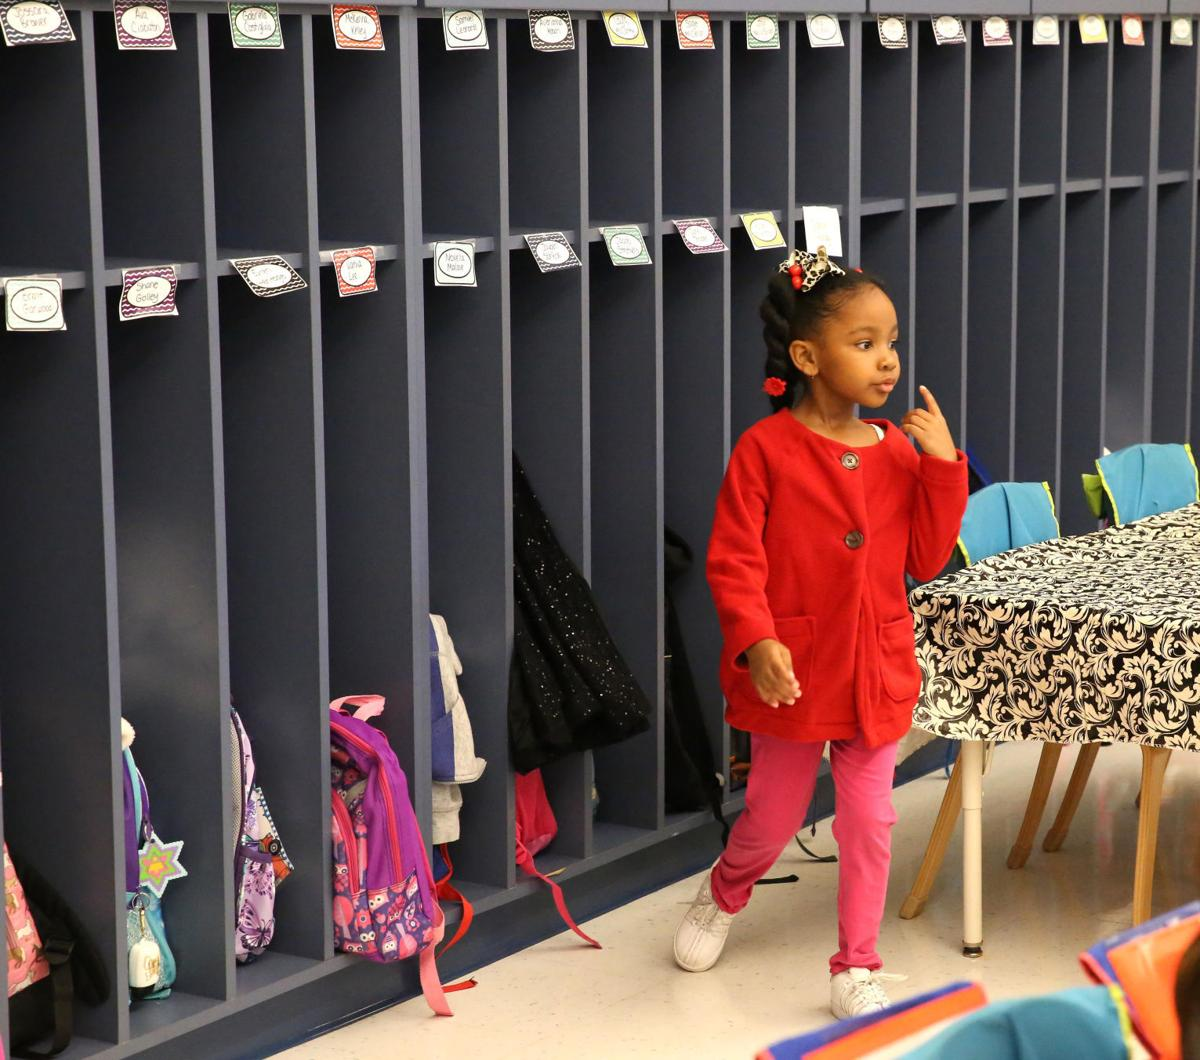 kindergarten full day versus half day 2 essay Advantages of full-day kindergarten: more than 3 million students are enrolled in kindergarten programs in the united states slightly more than half of those students are enrolled in full-day programs, and the remainder attend more traditional half-day kindergarten.